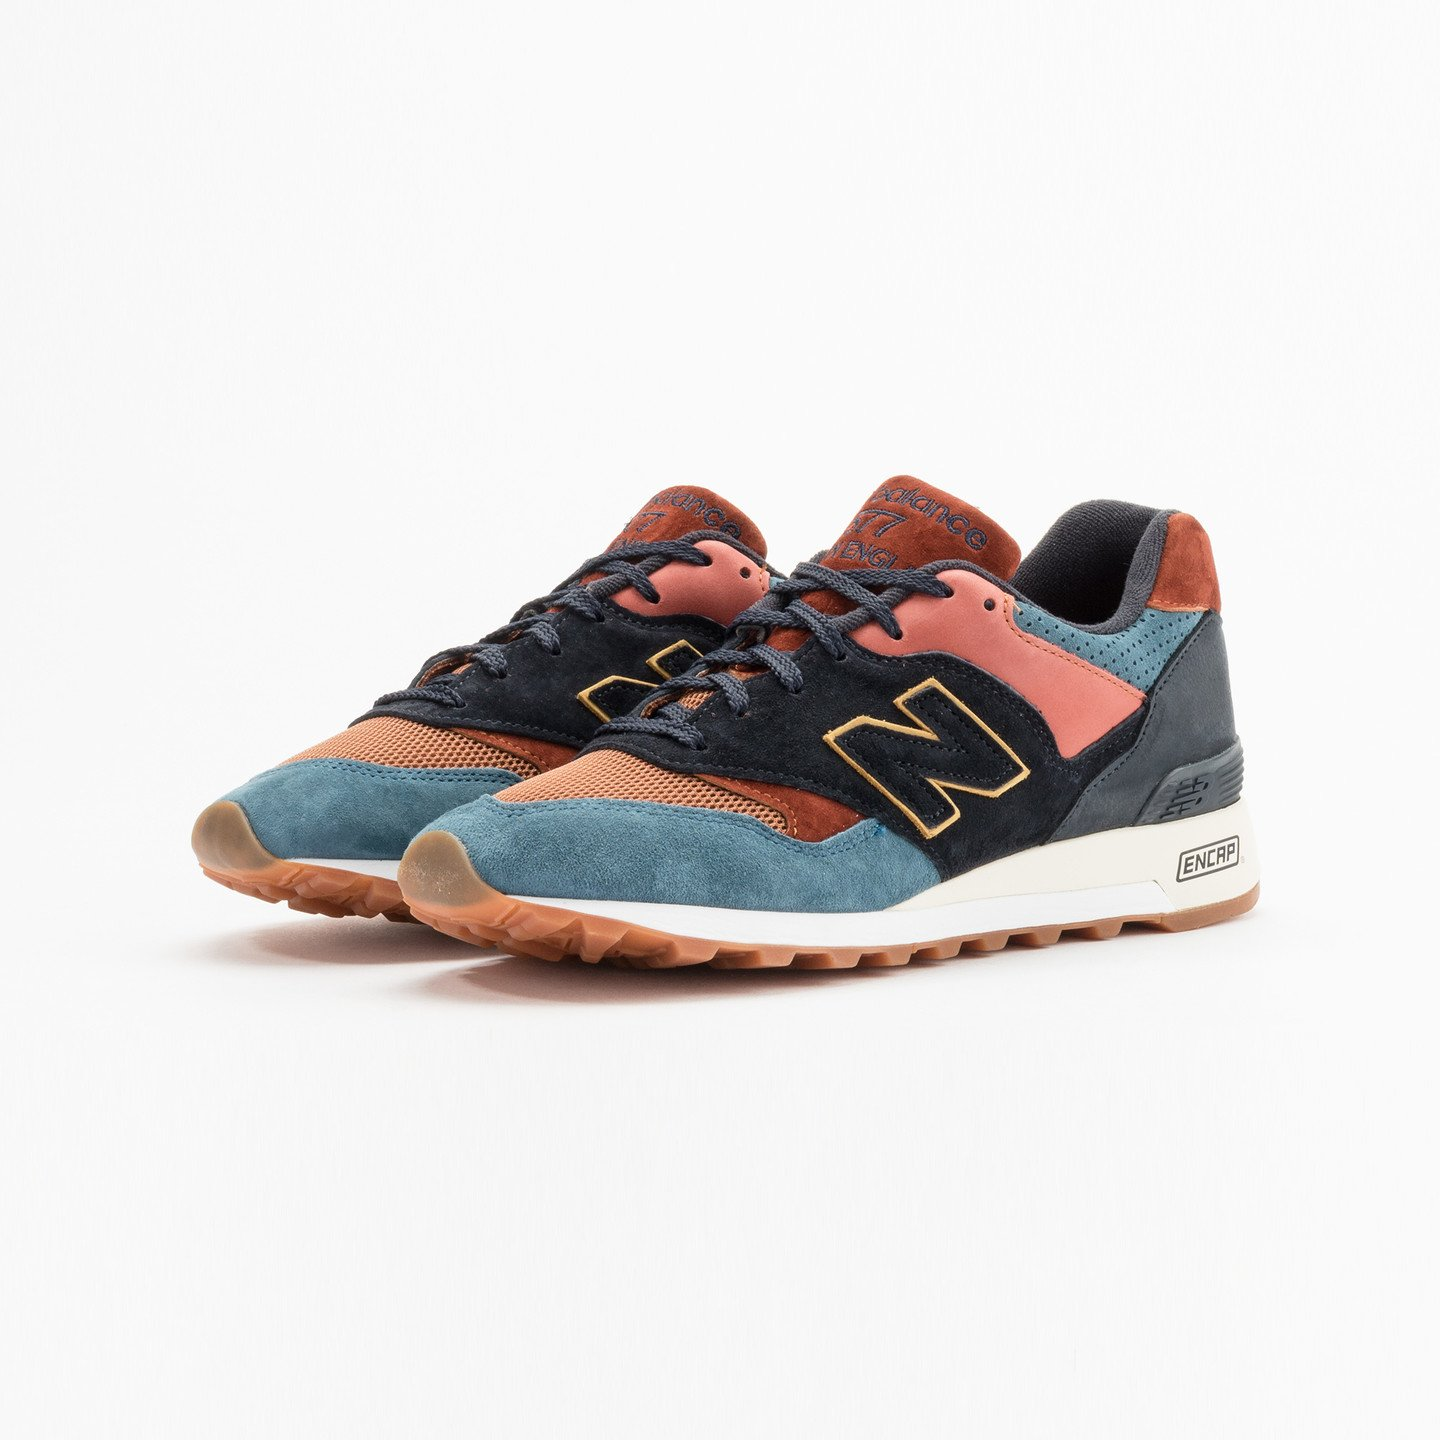 New Balance M577 YP Made in UK 'Yard Pack' Multicolor M577YP-41.5